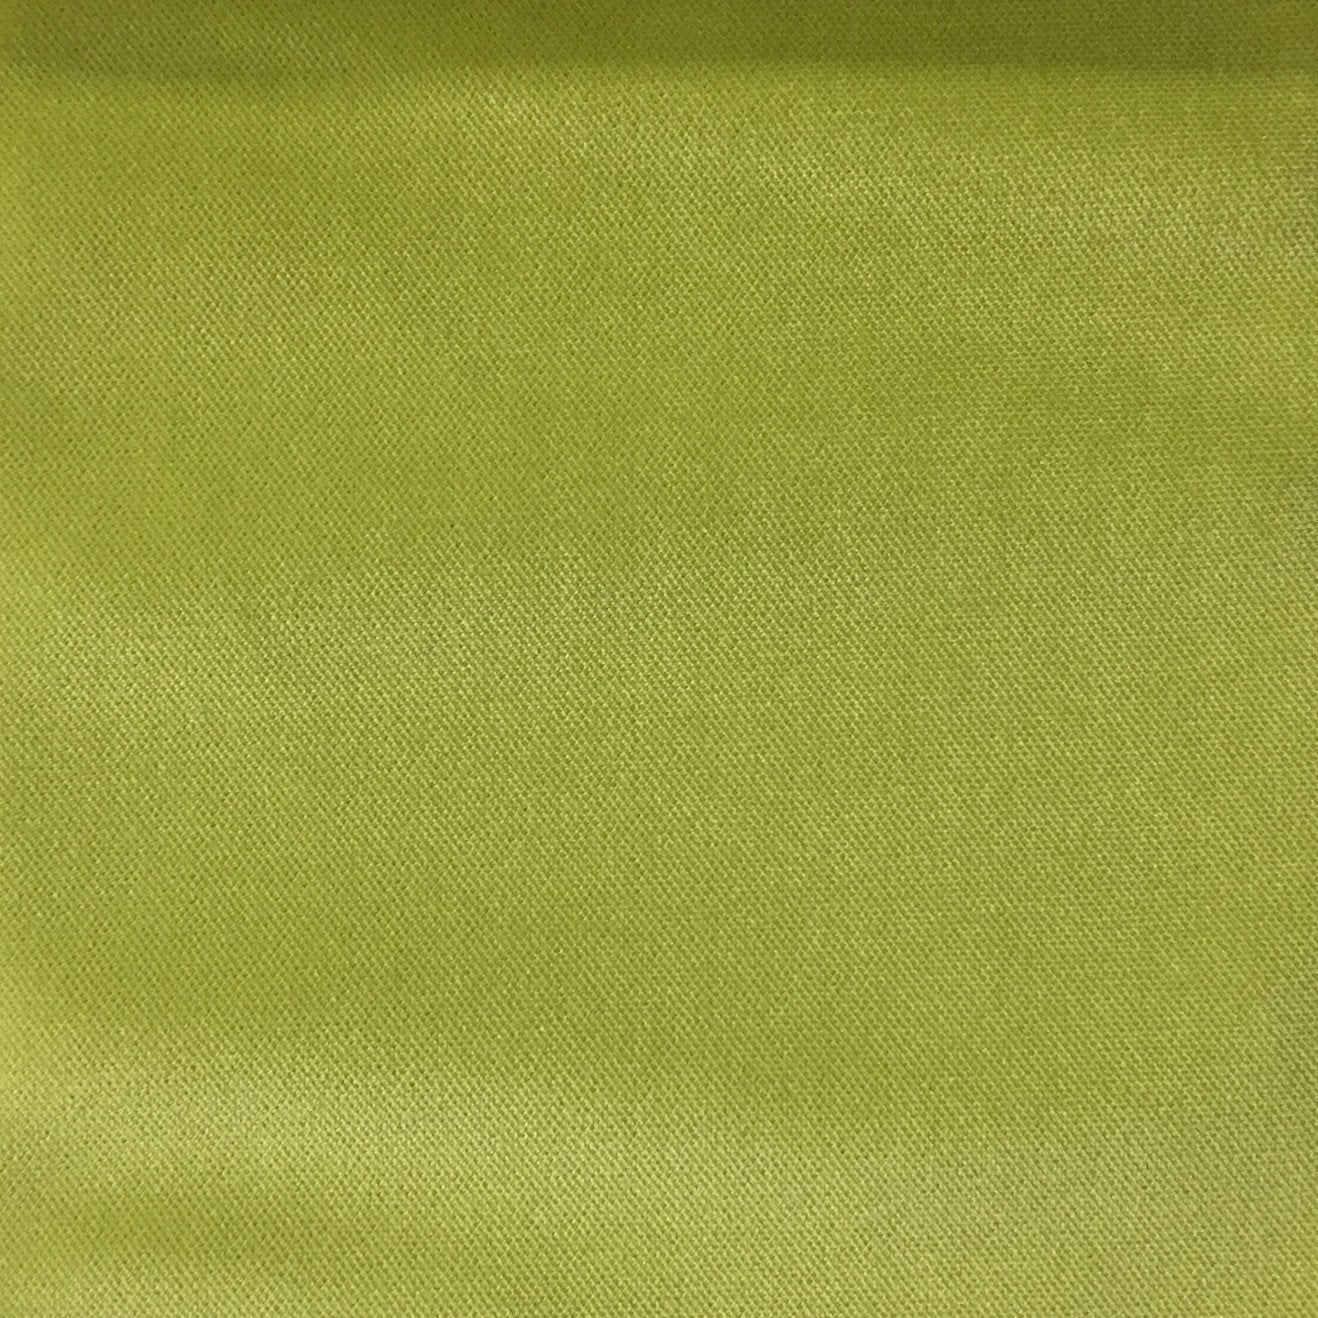 Byron - Sateen Velvet Upholstery Fabric by the Yard - 49 Colors